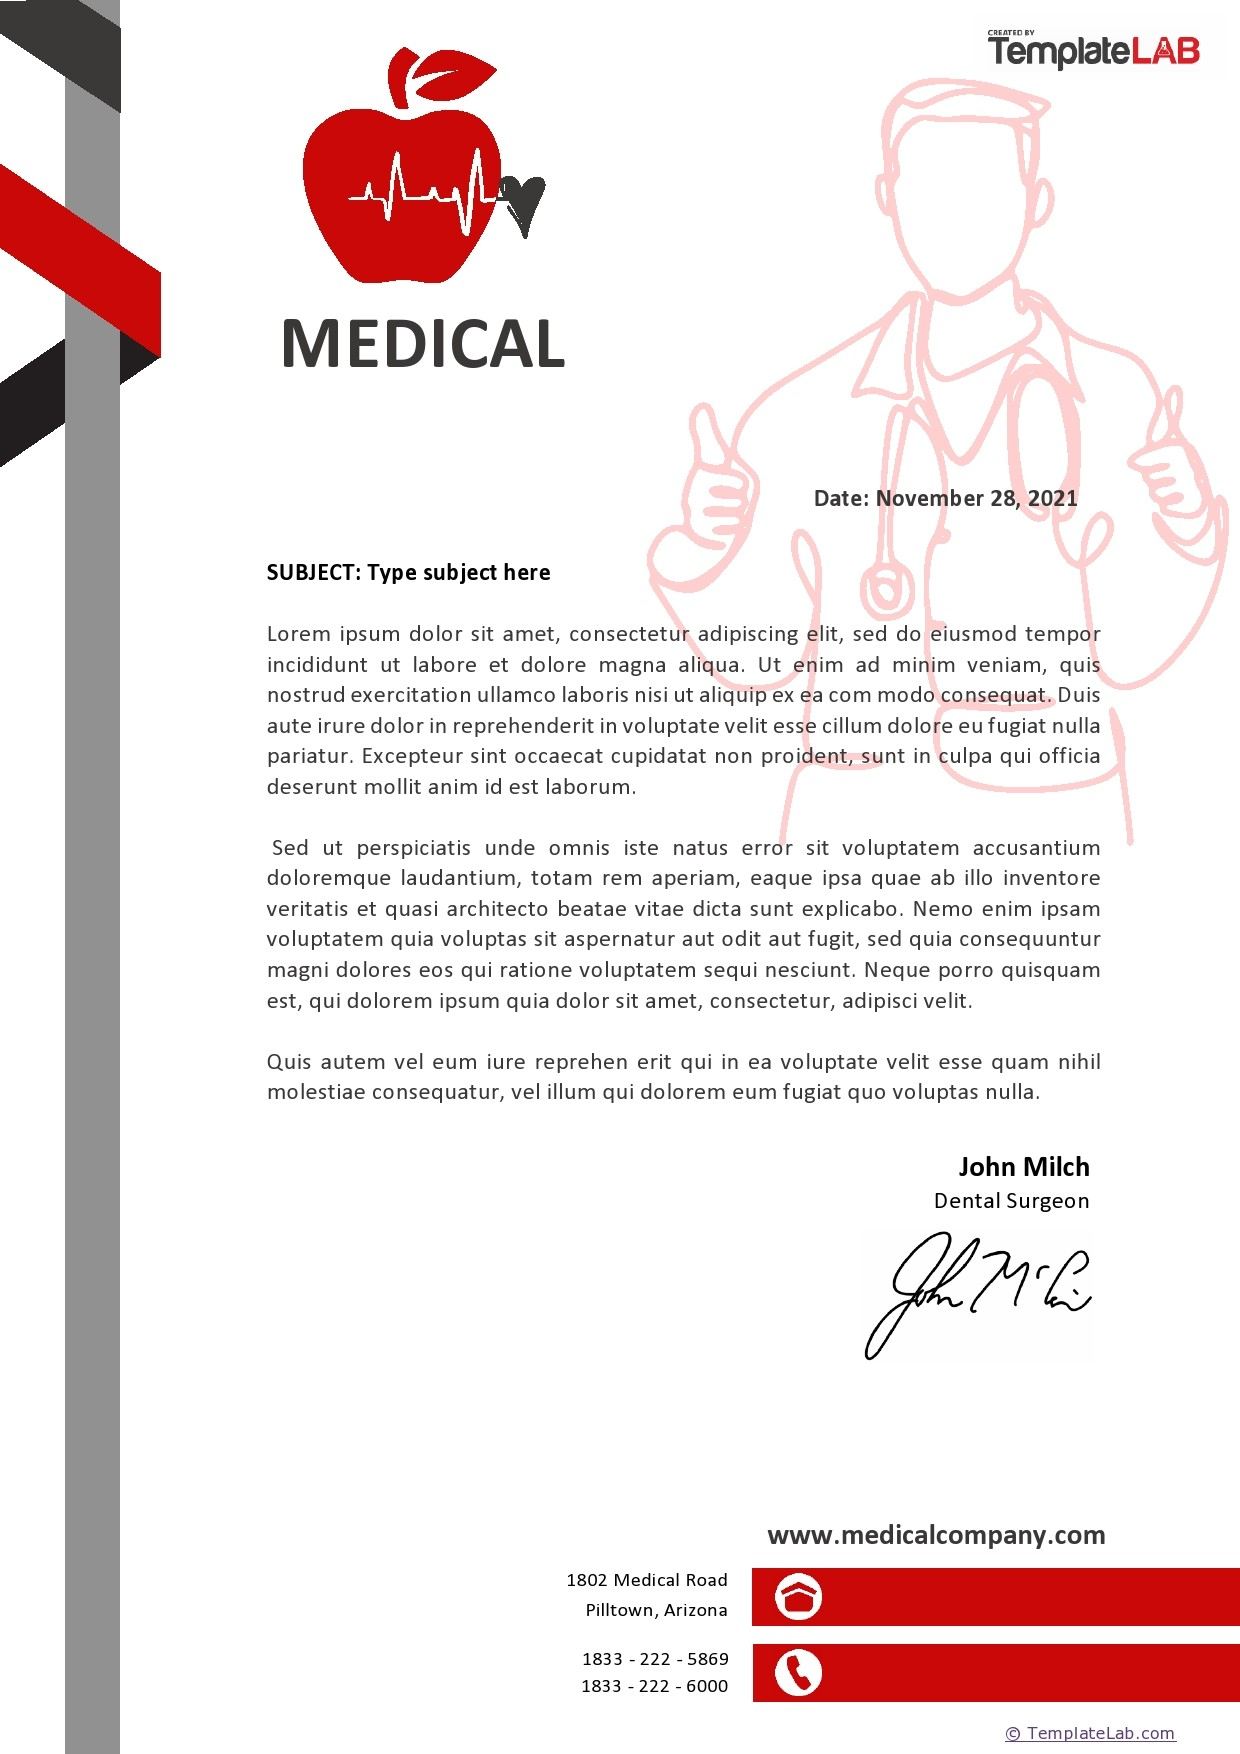 Free Medical Letterhead Template - TemplateLab.com